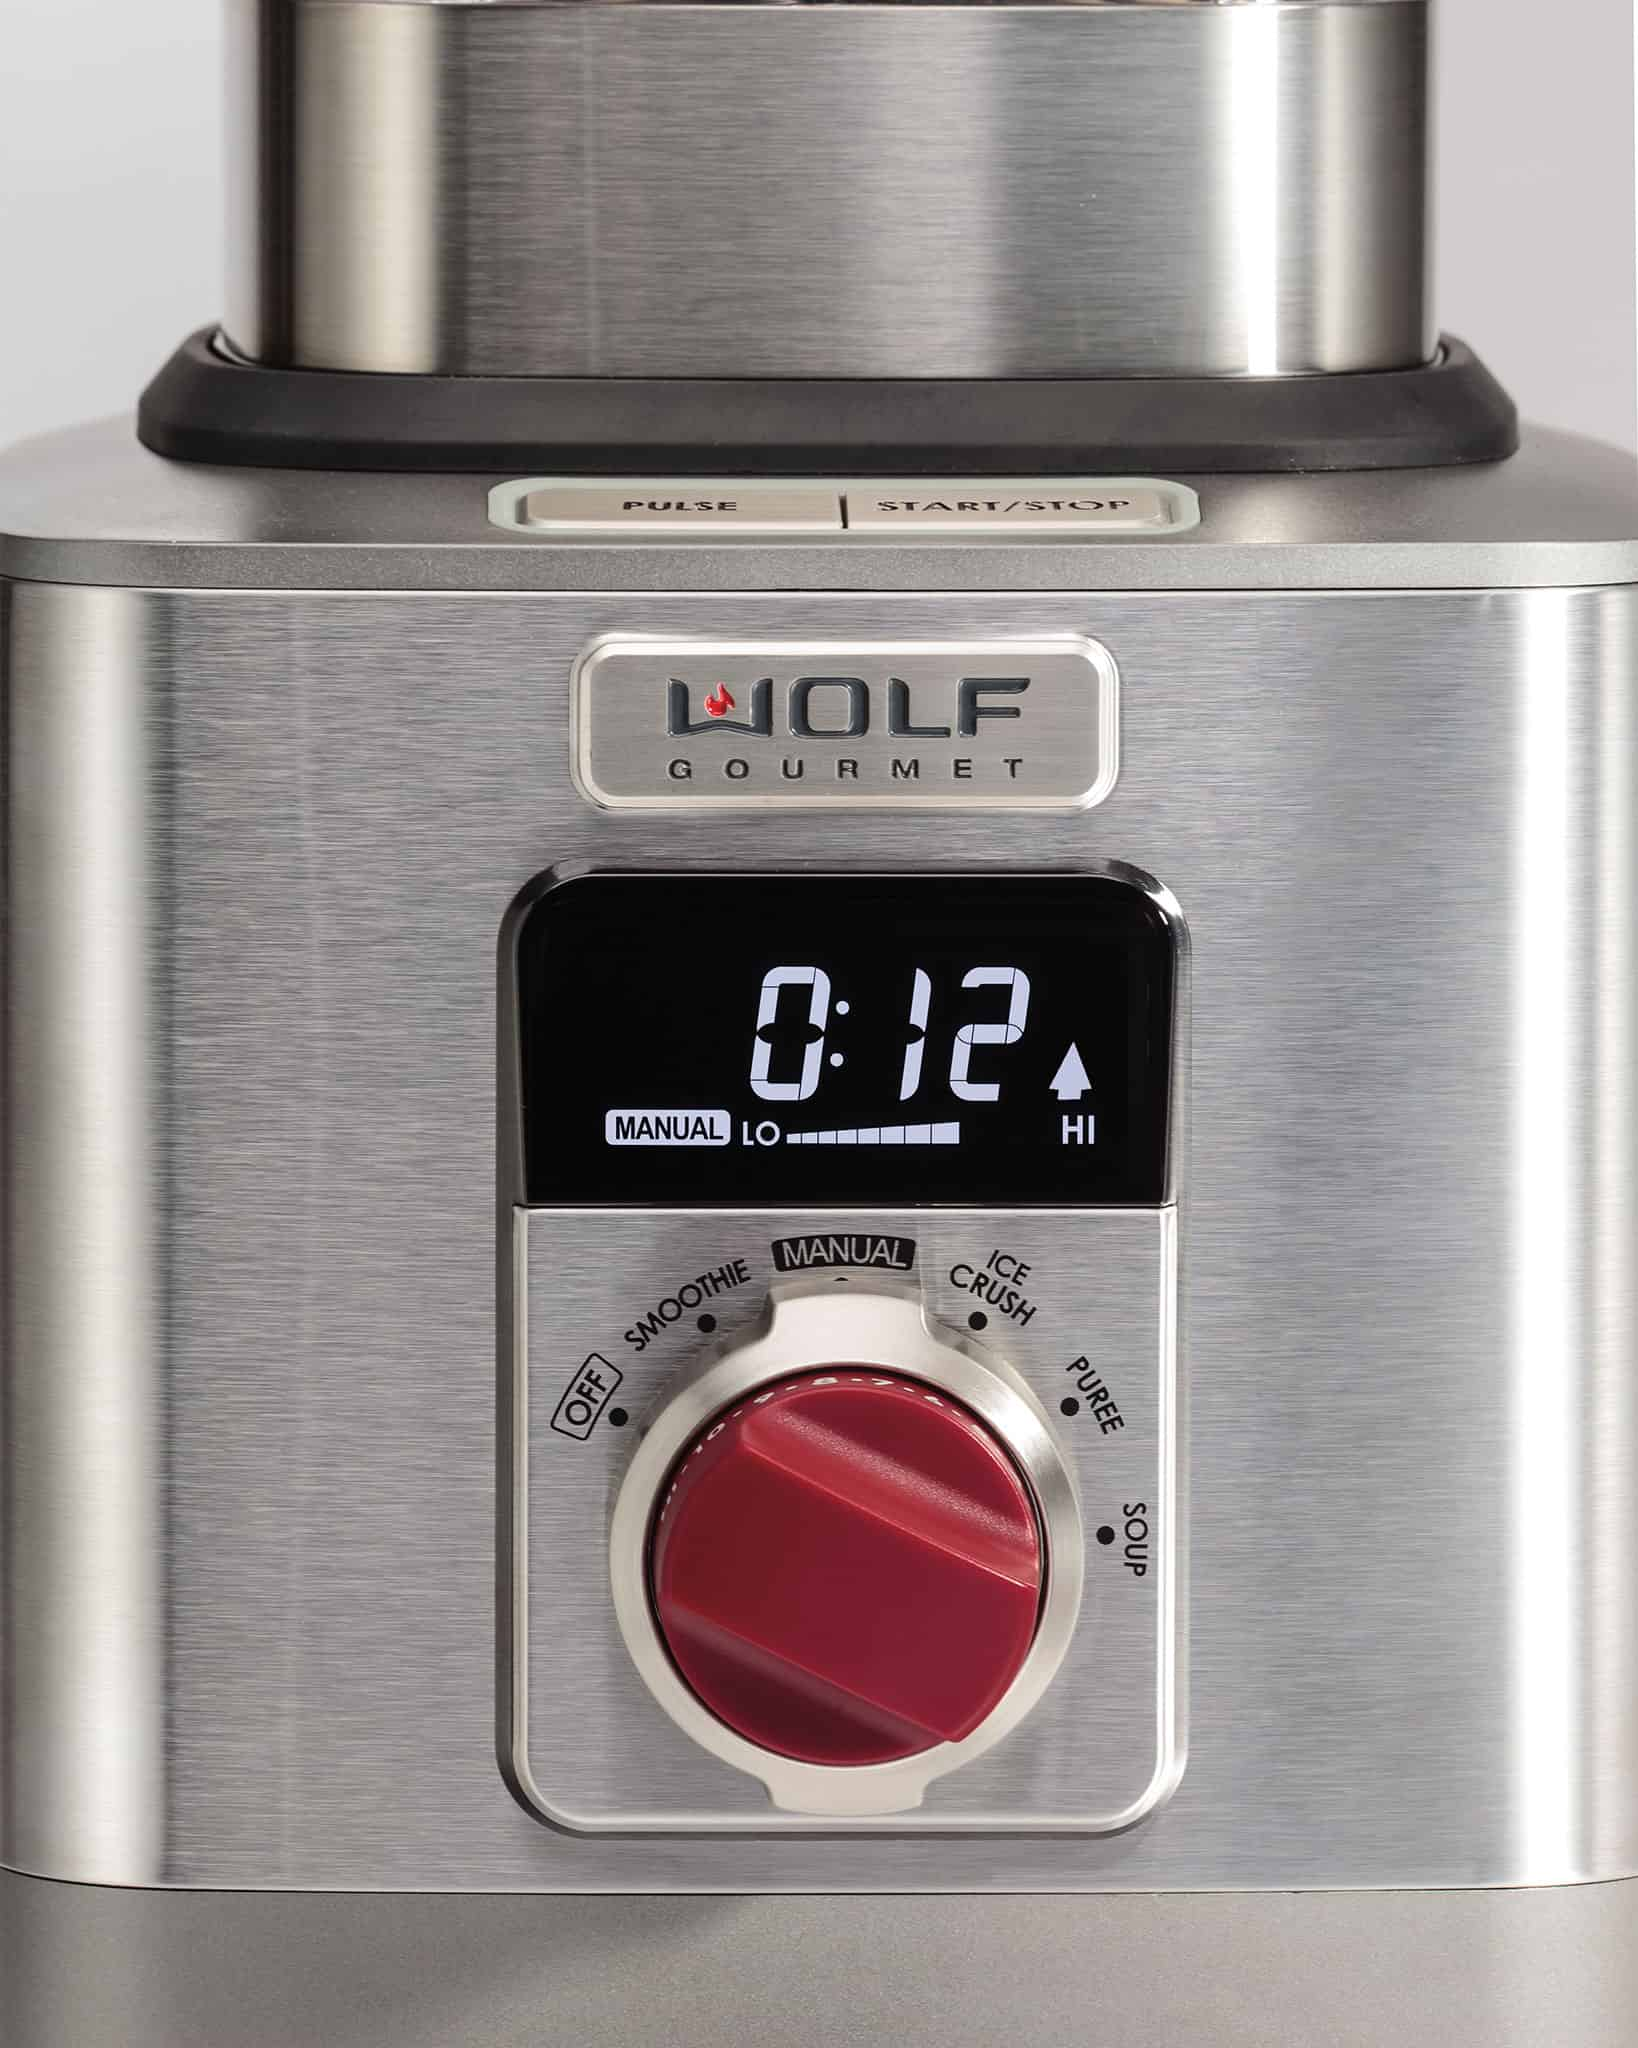 Wolf Gourmet Blender Close Up